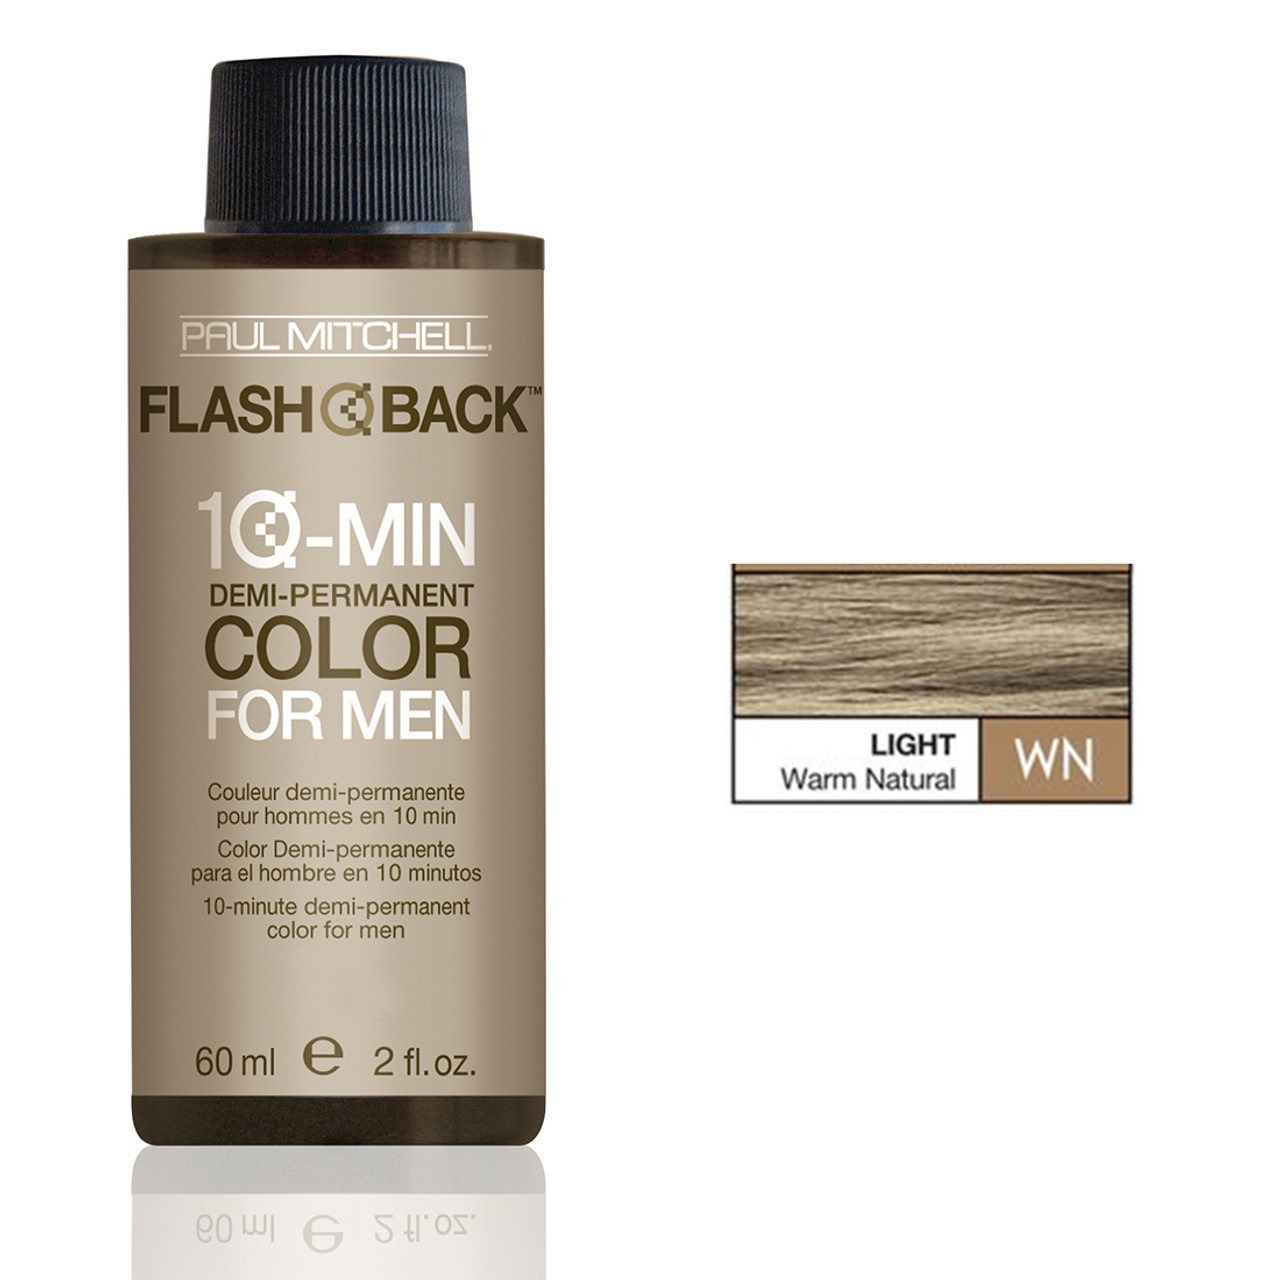 Paul mitchell flash back 10 minute hair color for men sleekshop paul mitchell flash back 10 minute hair color for men geenschuldenfo Image collections